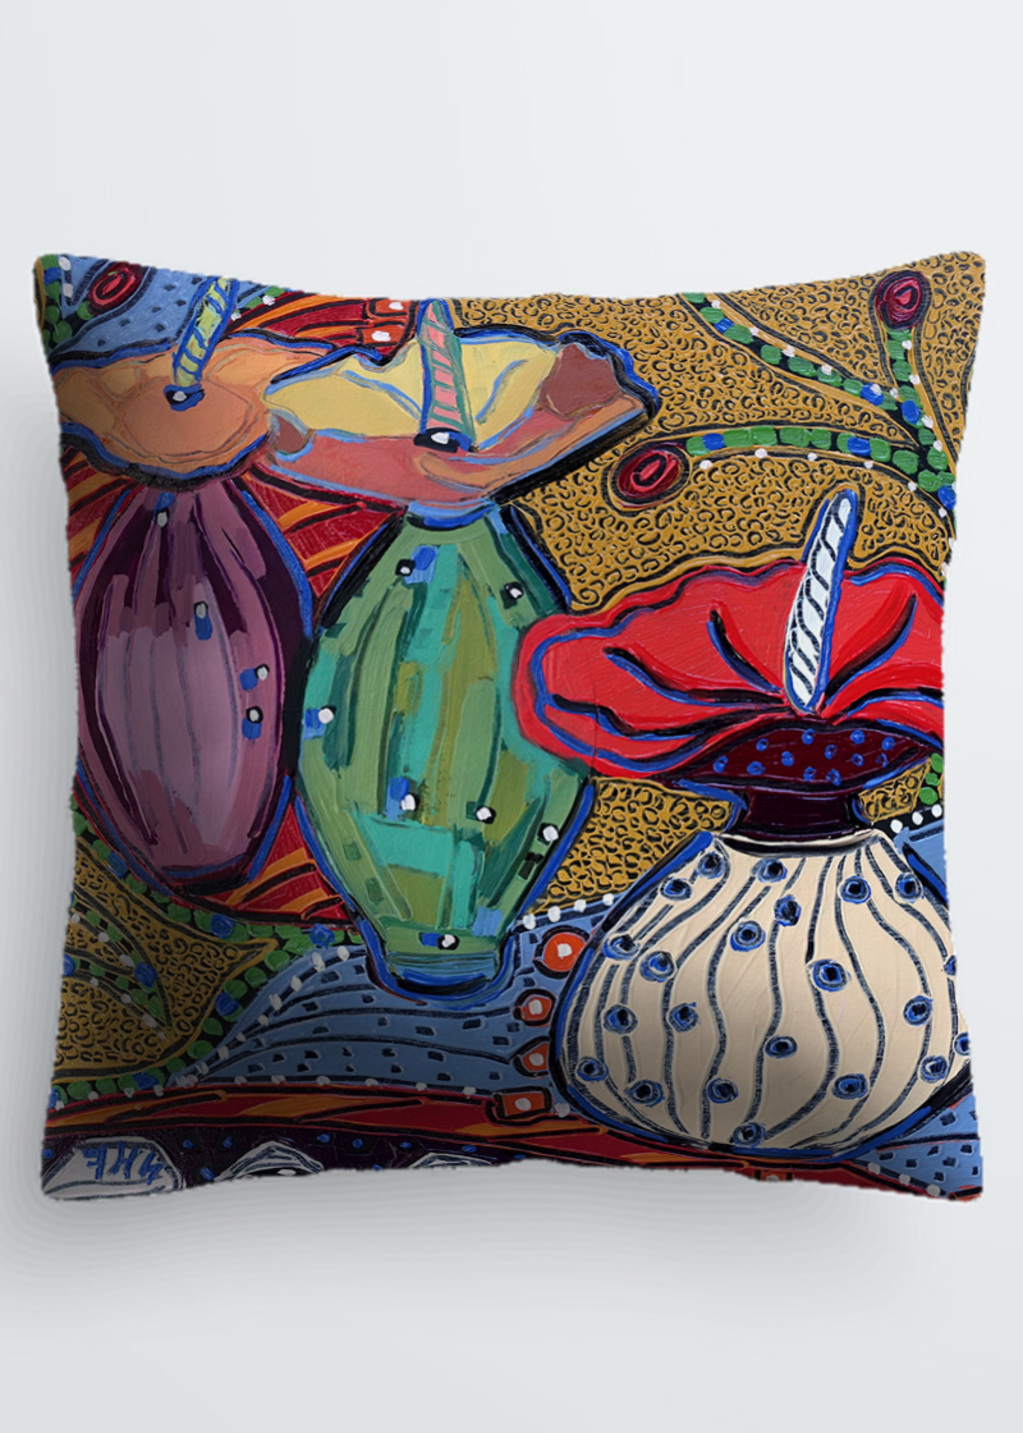 Picture of Vessels in Dreamtime 14 Pablo Pillow in Scuba knit